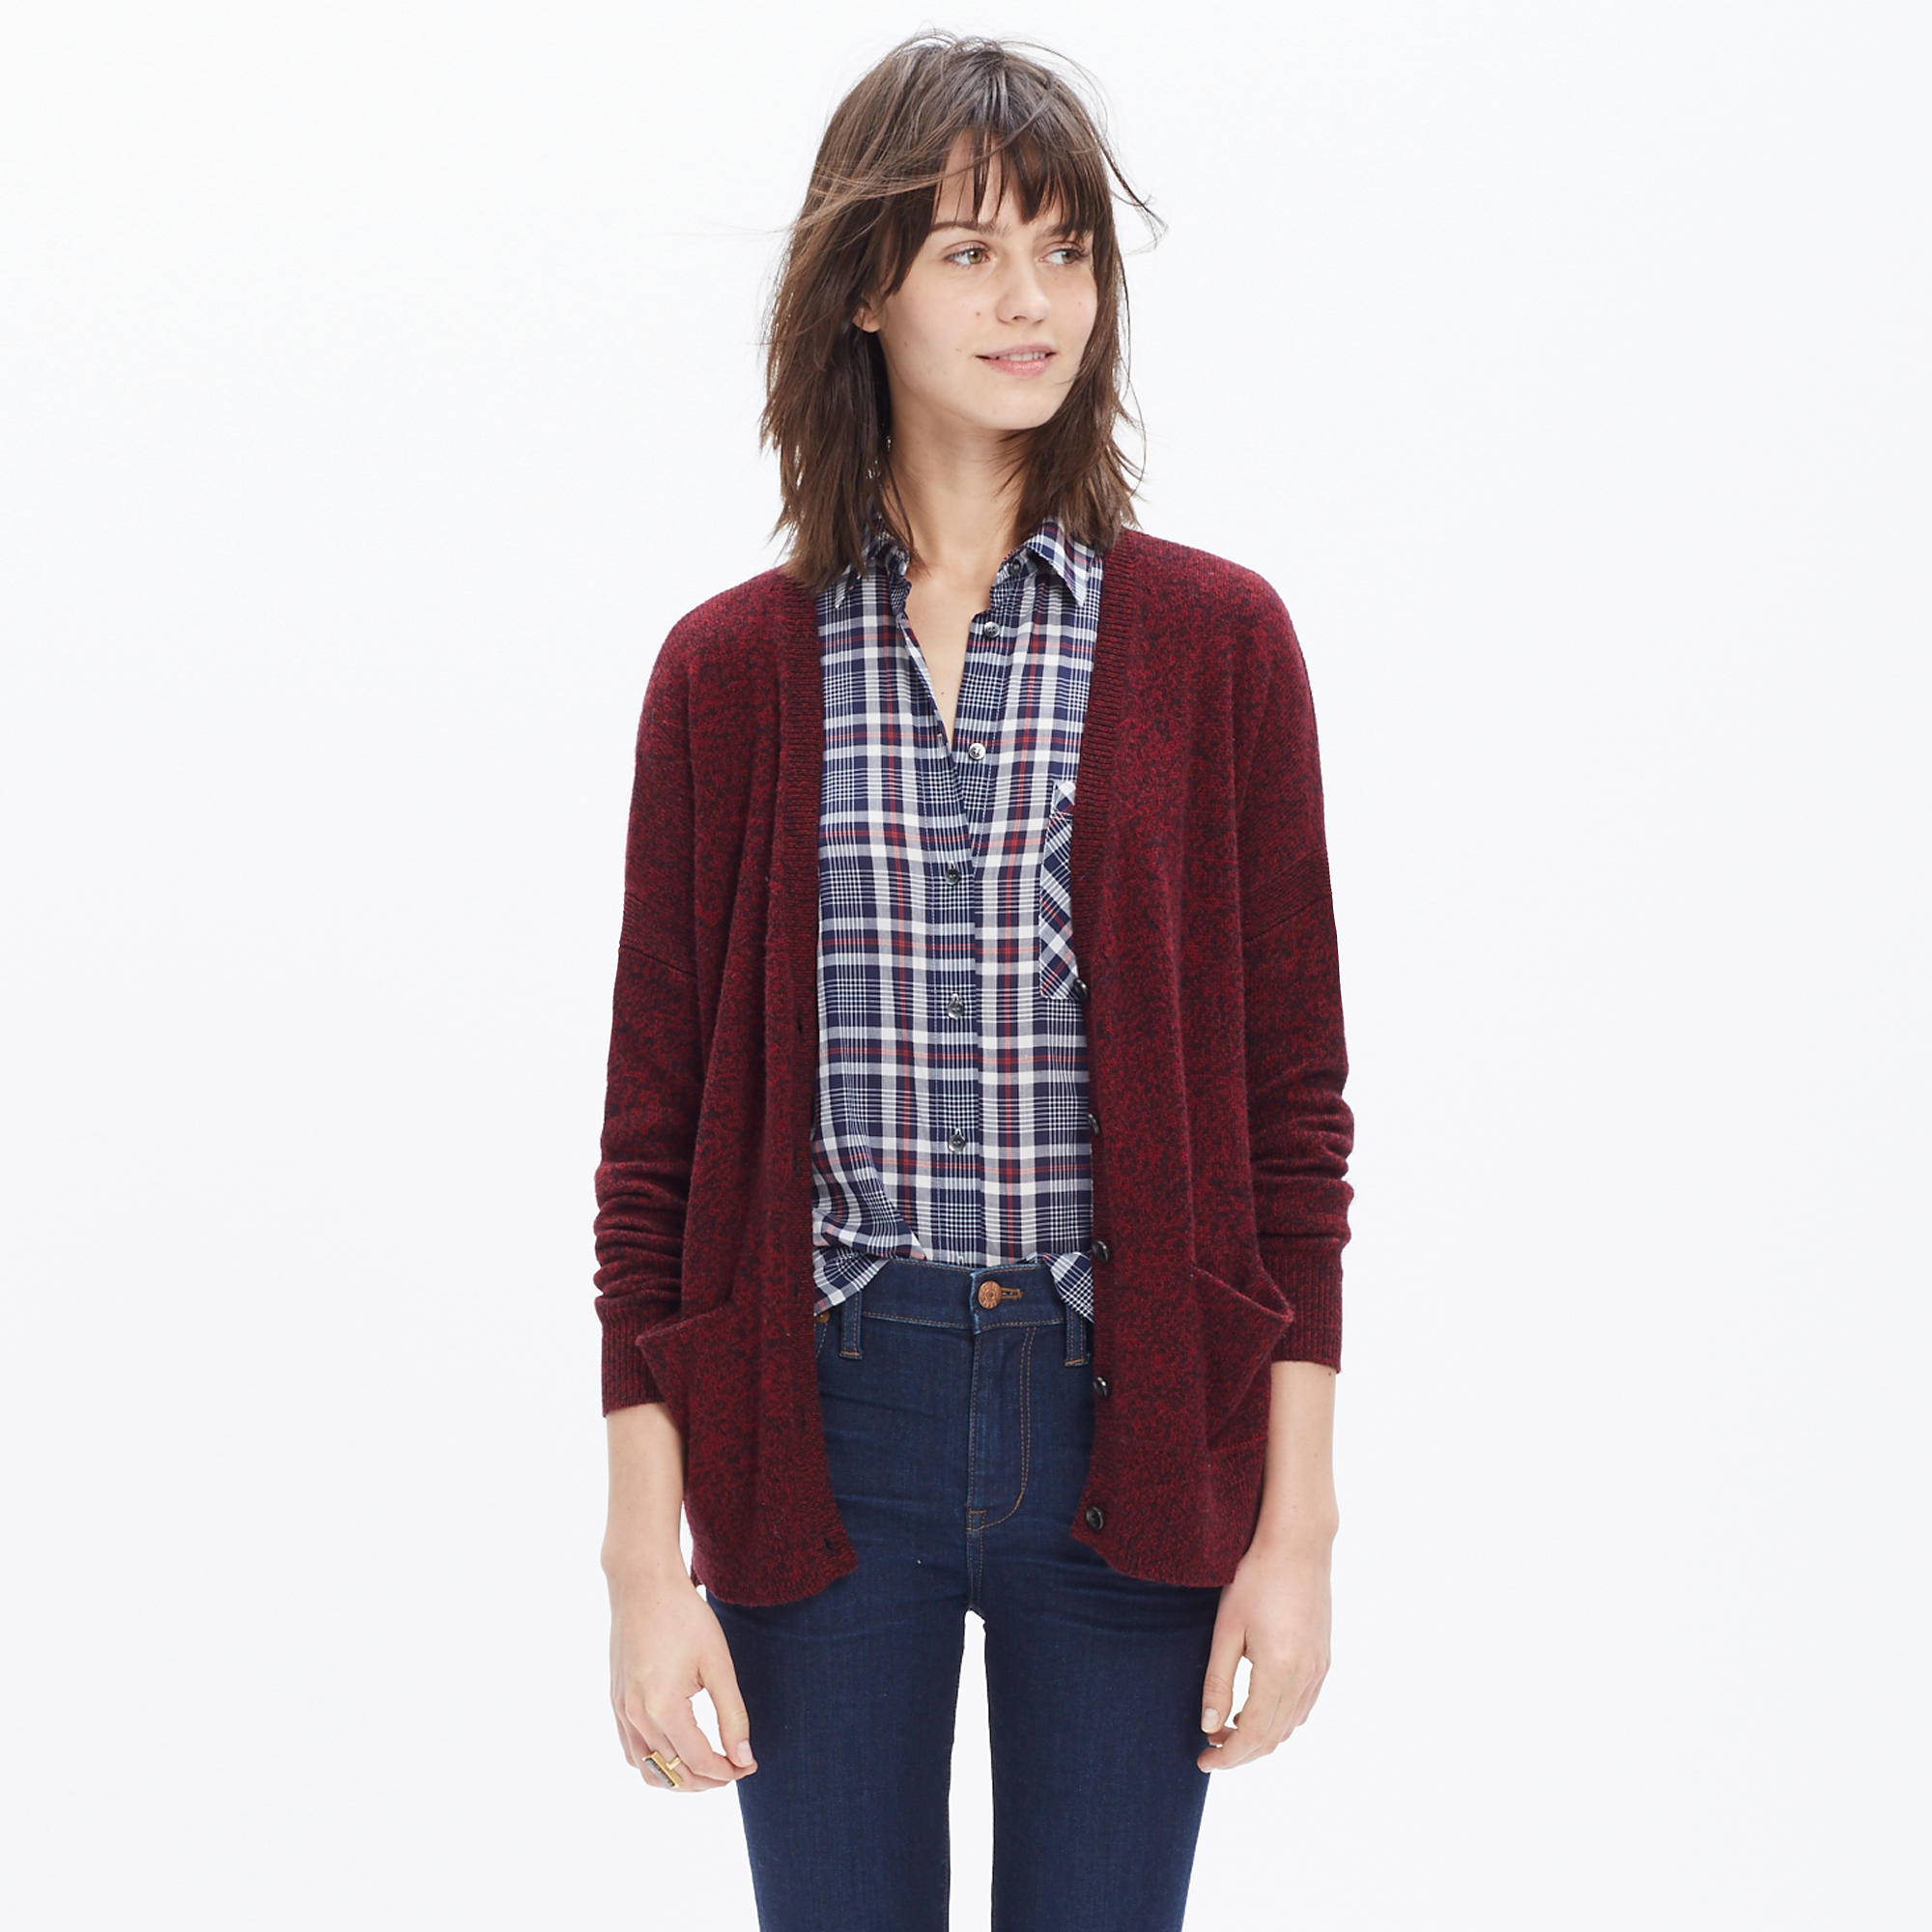 Landscape Cardigan Sweater : cardigans & sweater-jackets | Madewell